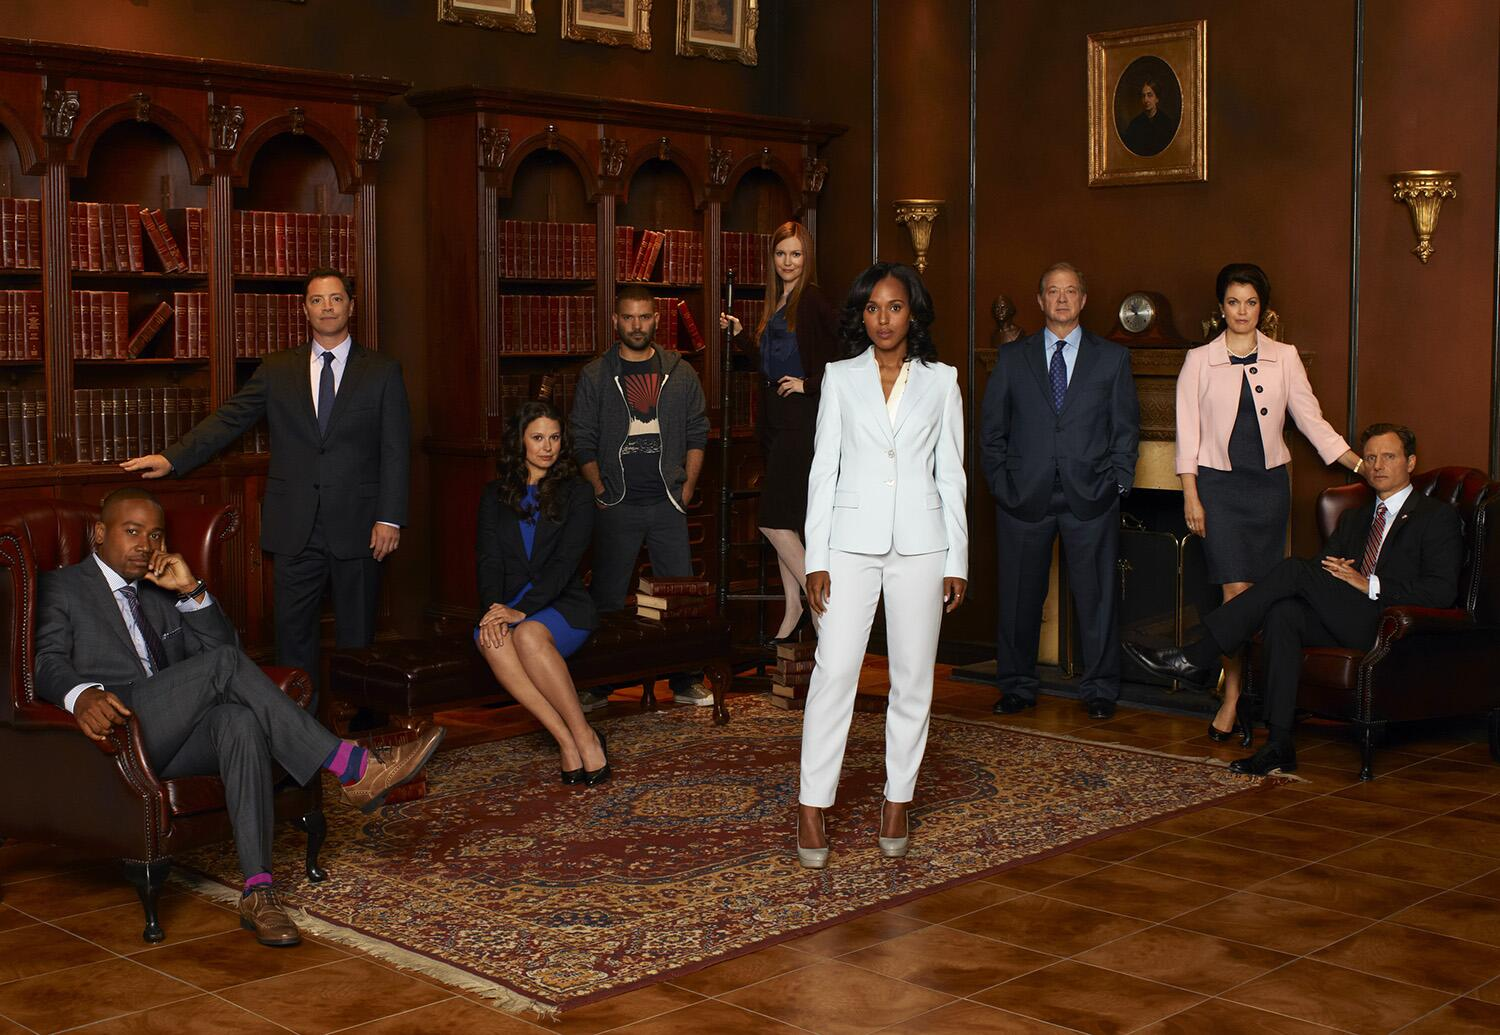 Watch the cast of #Scandal take over @GMA and @theviewtv Tuesday starting at 7AM on ABC! RT if you'll be watching! http://t.co/dsyDpR8T3y